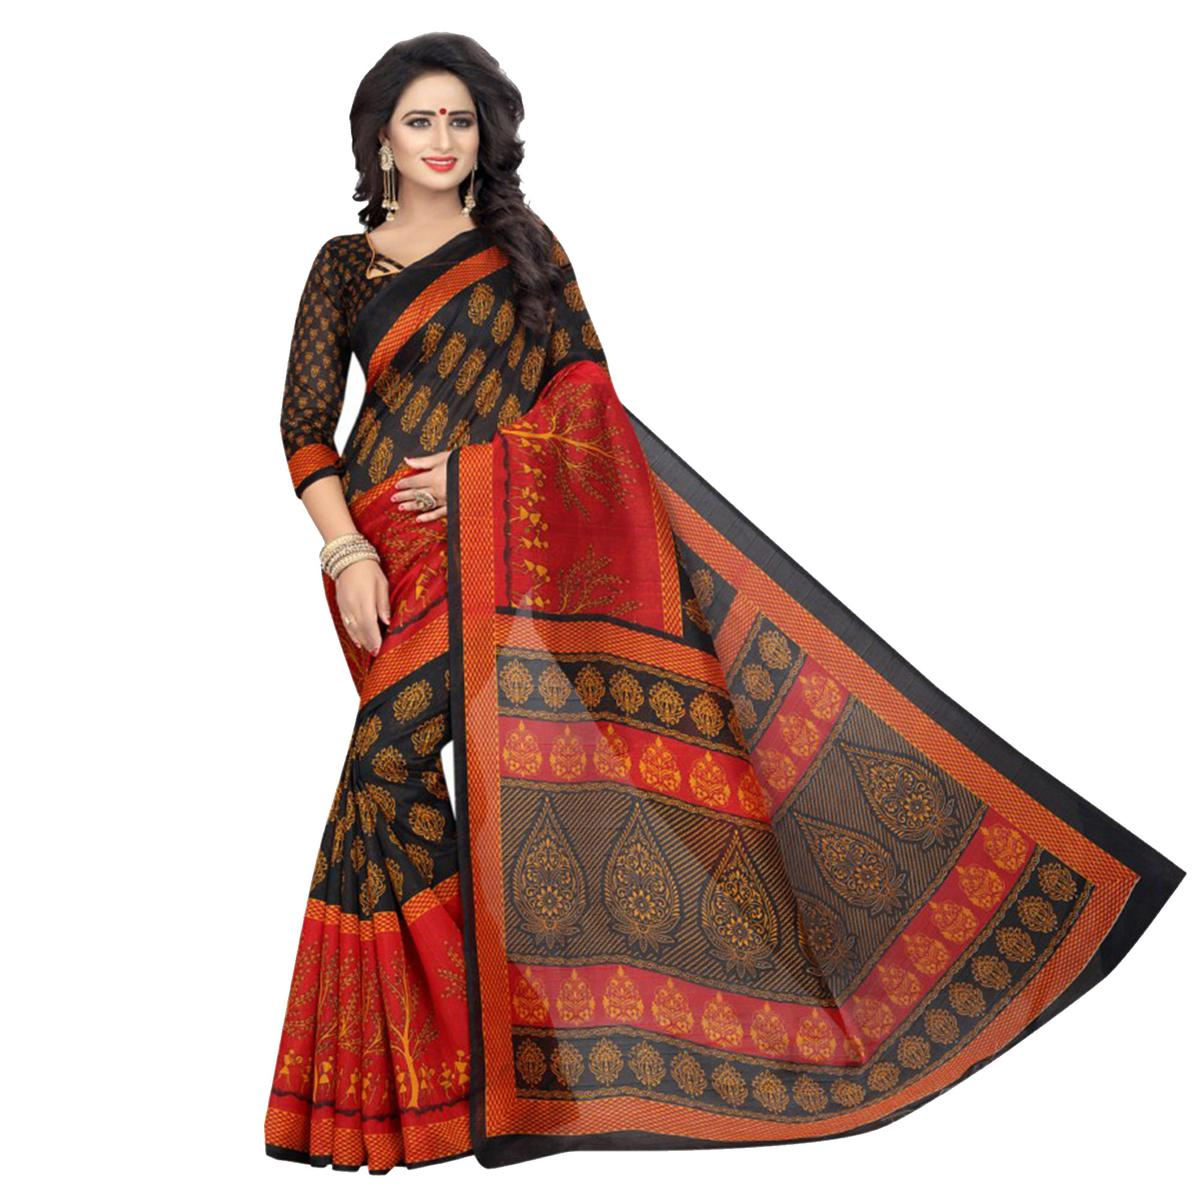 Stylish Black & Red Bhagalpuri Saree